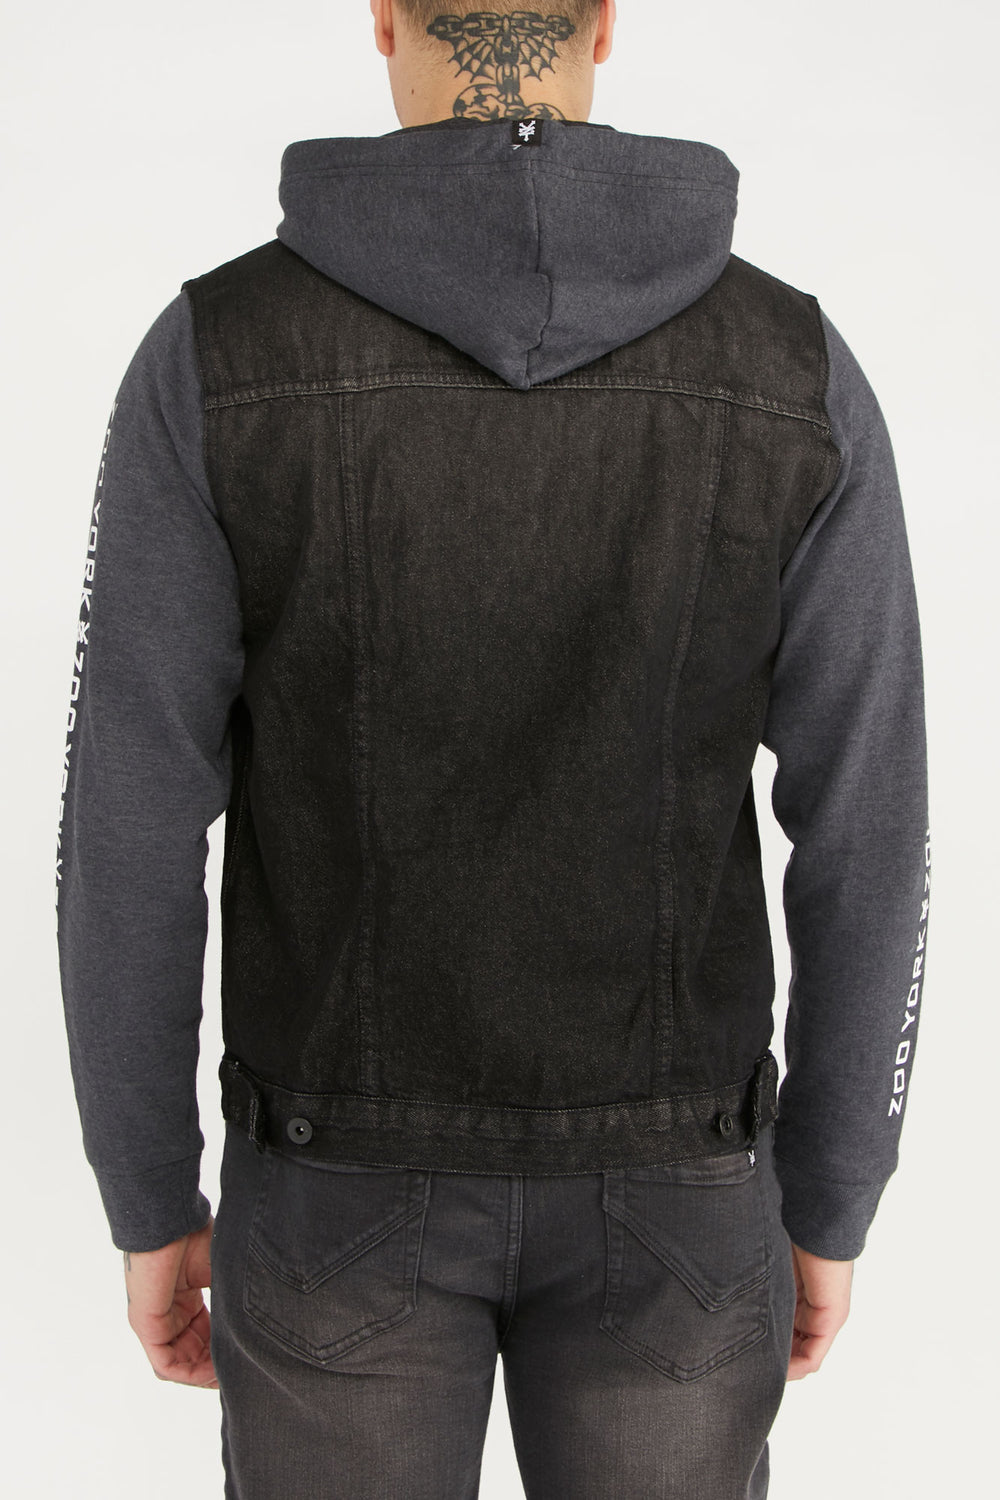 Zoo York Mens Denim and Fleece Jacket Black